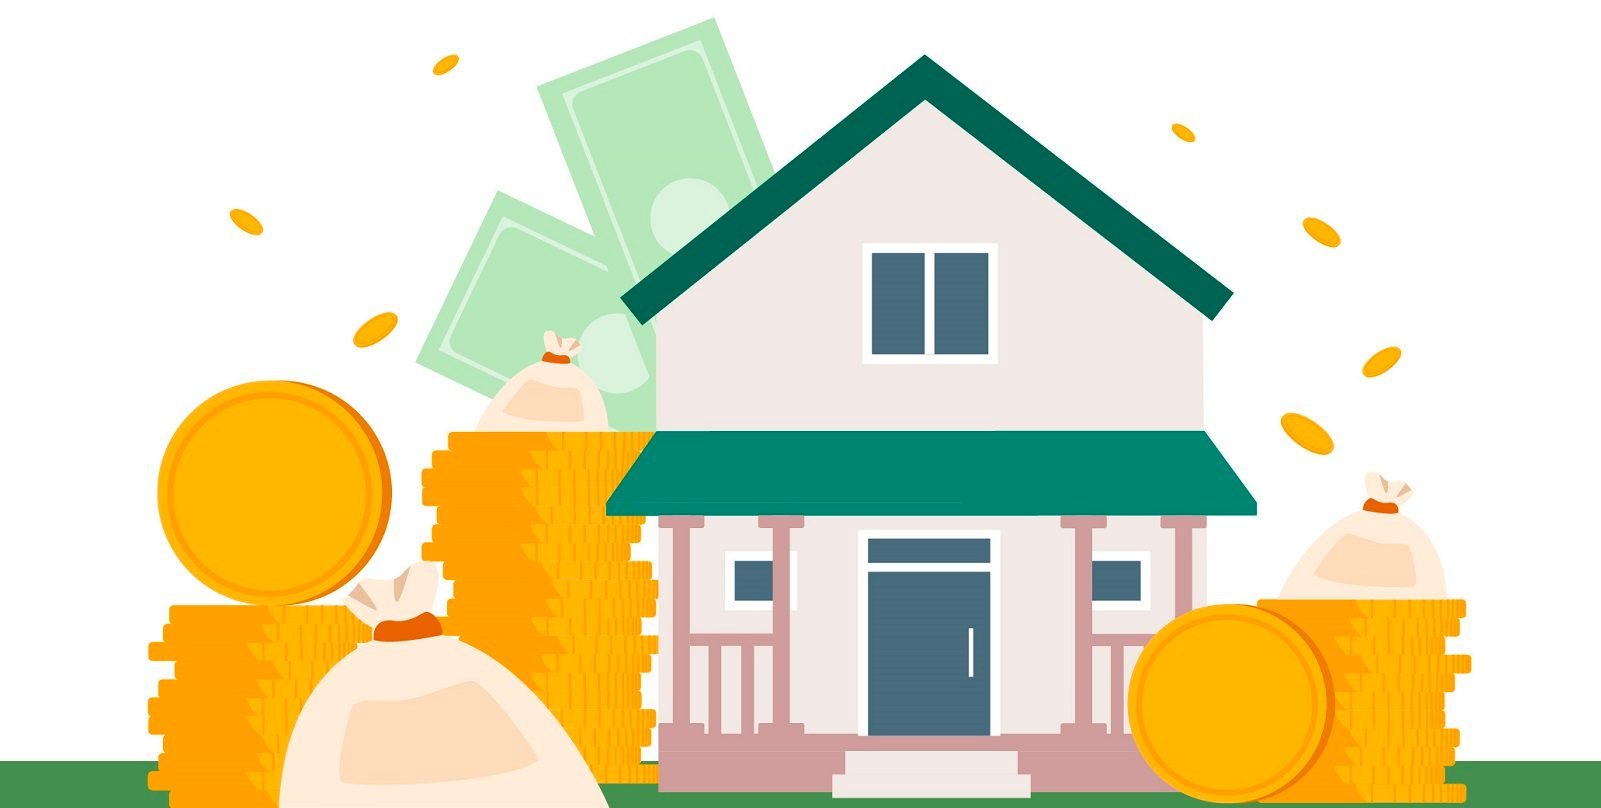 House surrounded by mortgage repayment funds